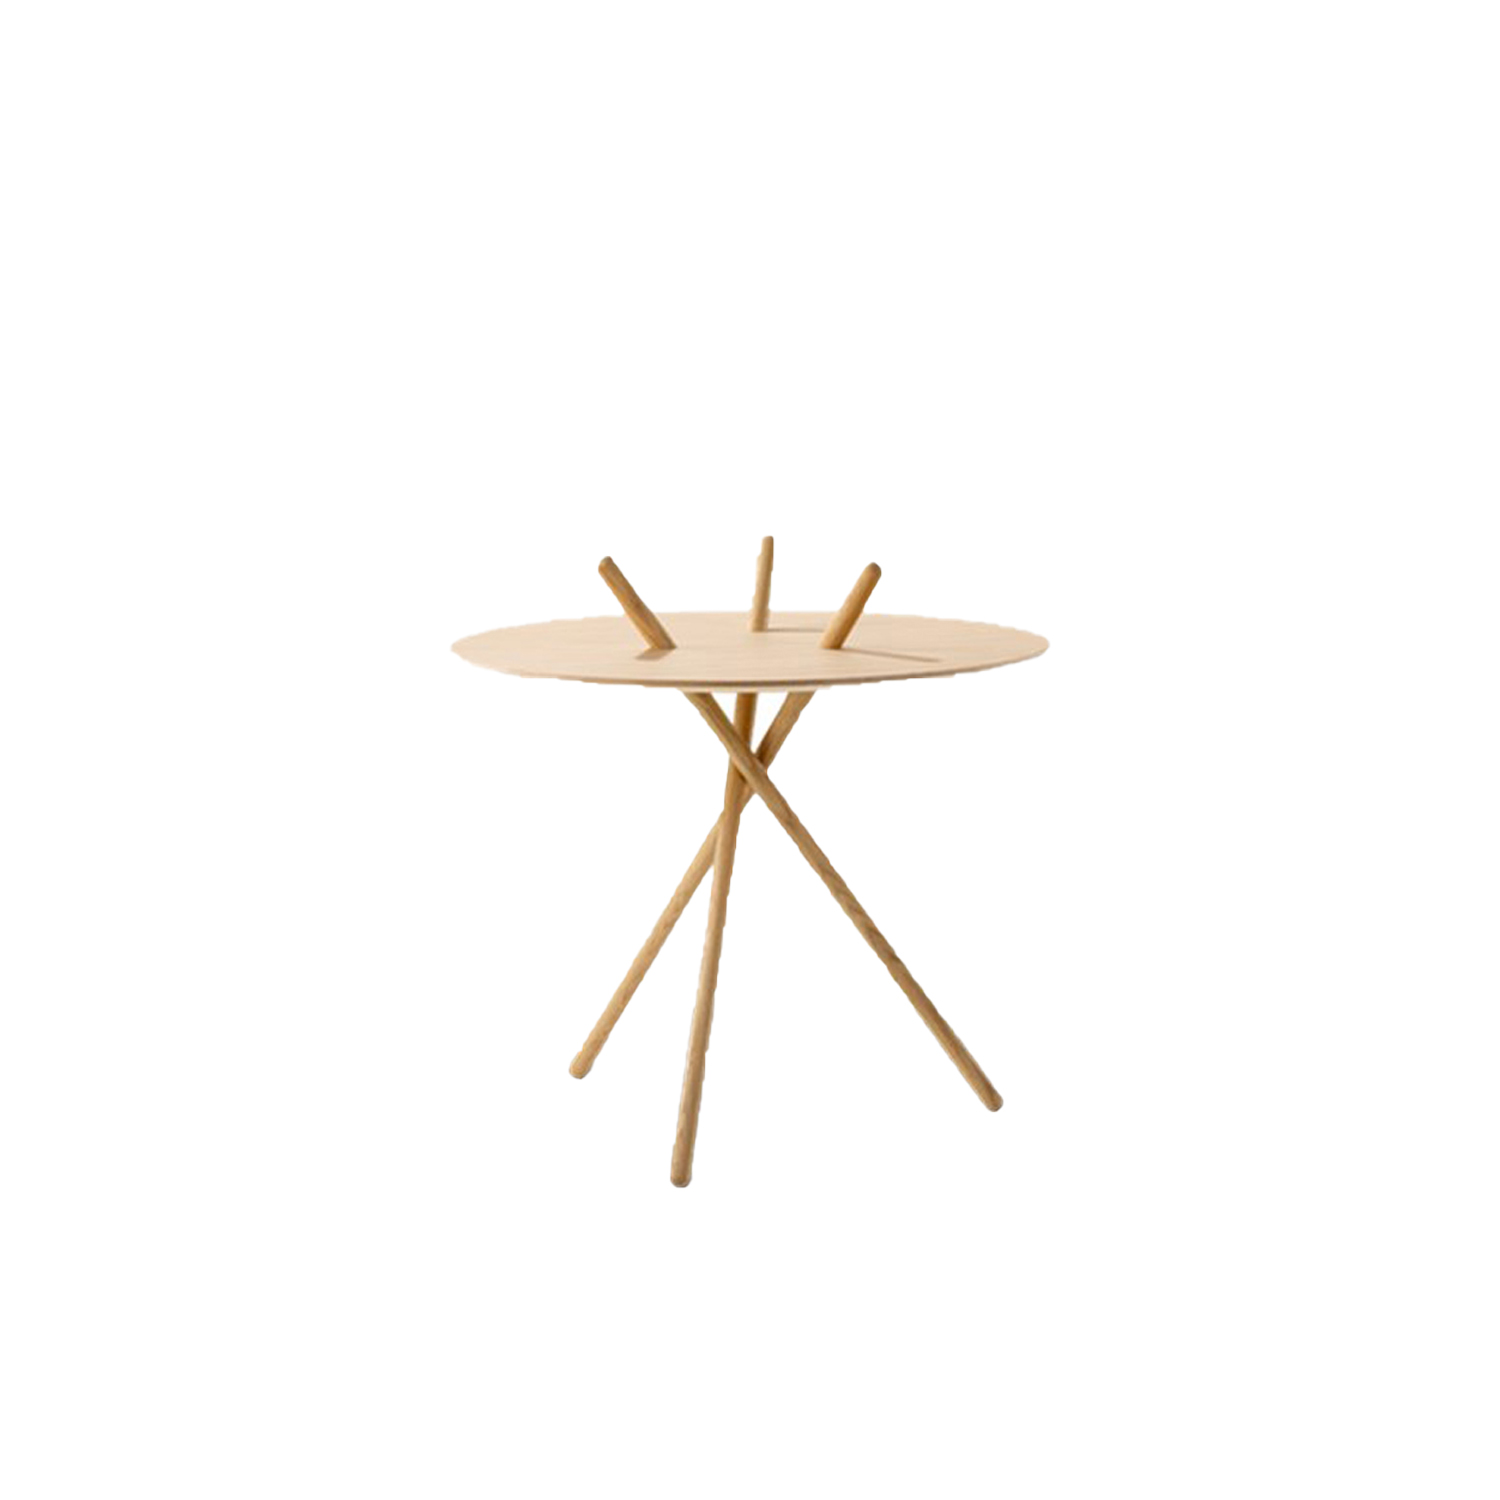 Micado Table - A game using sticks was the inspiration behind Micado. The simple, three-legged construction is assembled without hardware and supports itself.  Although many of our sofas and lounge chairs comprise our most celebrated designs, we have smaller pieces that are distinctive, well-crafted, modern originals in their own right. Pieces that add a touch of personality and practicality. A sense of cosiness. As punctuations to a style statement. Or just the pieces you were looking for to create a sense of completeness. Because when it comes to interior décor, sometimes the smallest detail can make the biggest difference. | Matter of Stuff